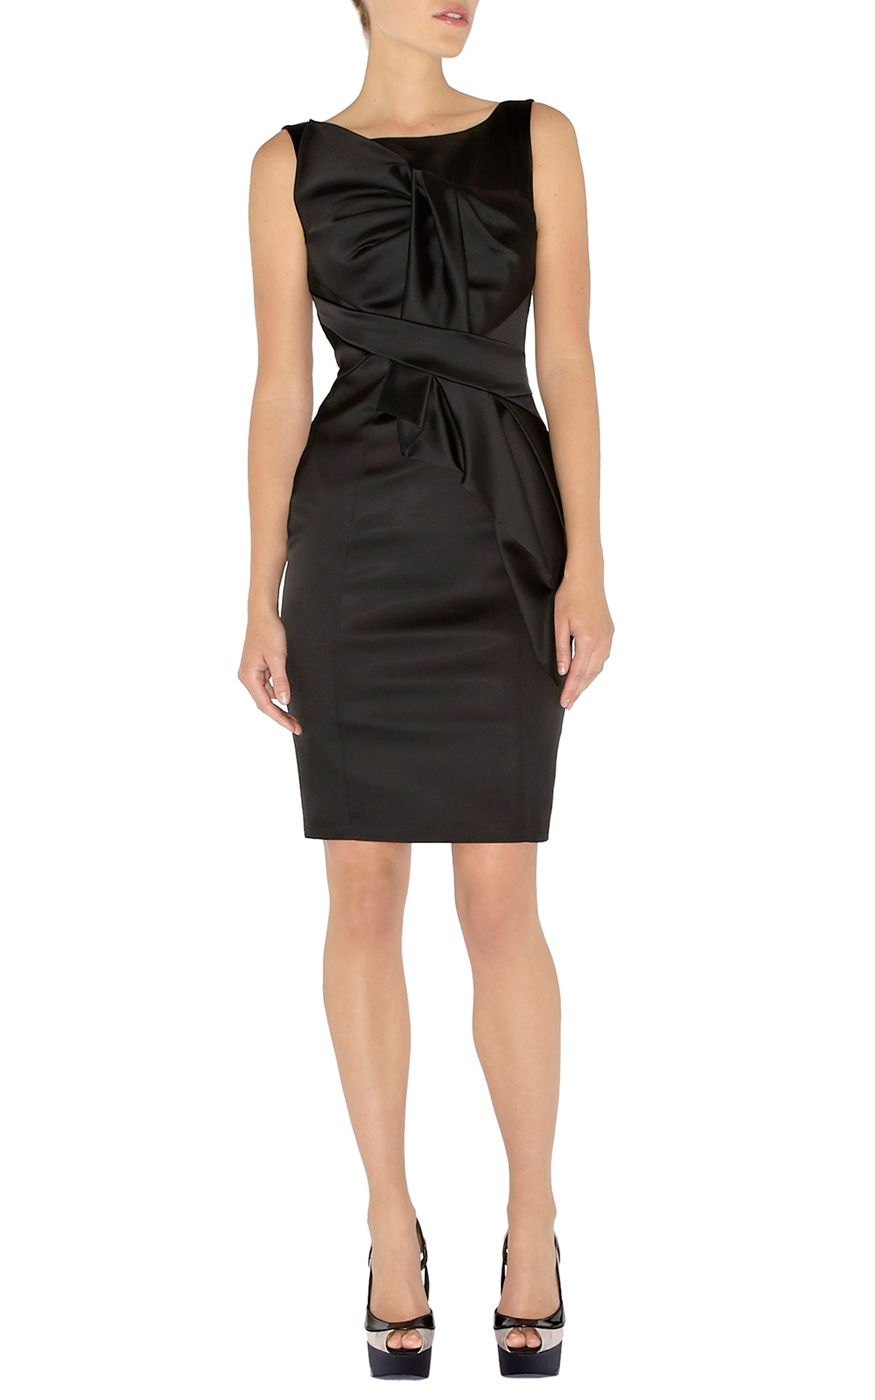 Karen Millen Pencil Folded Satin Dress Black